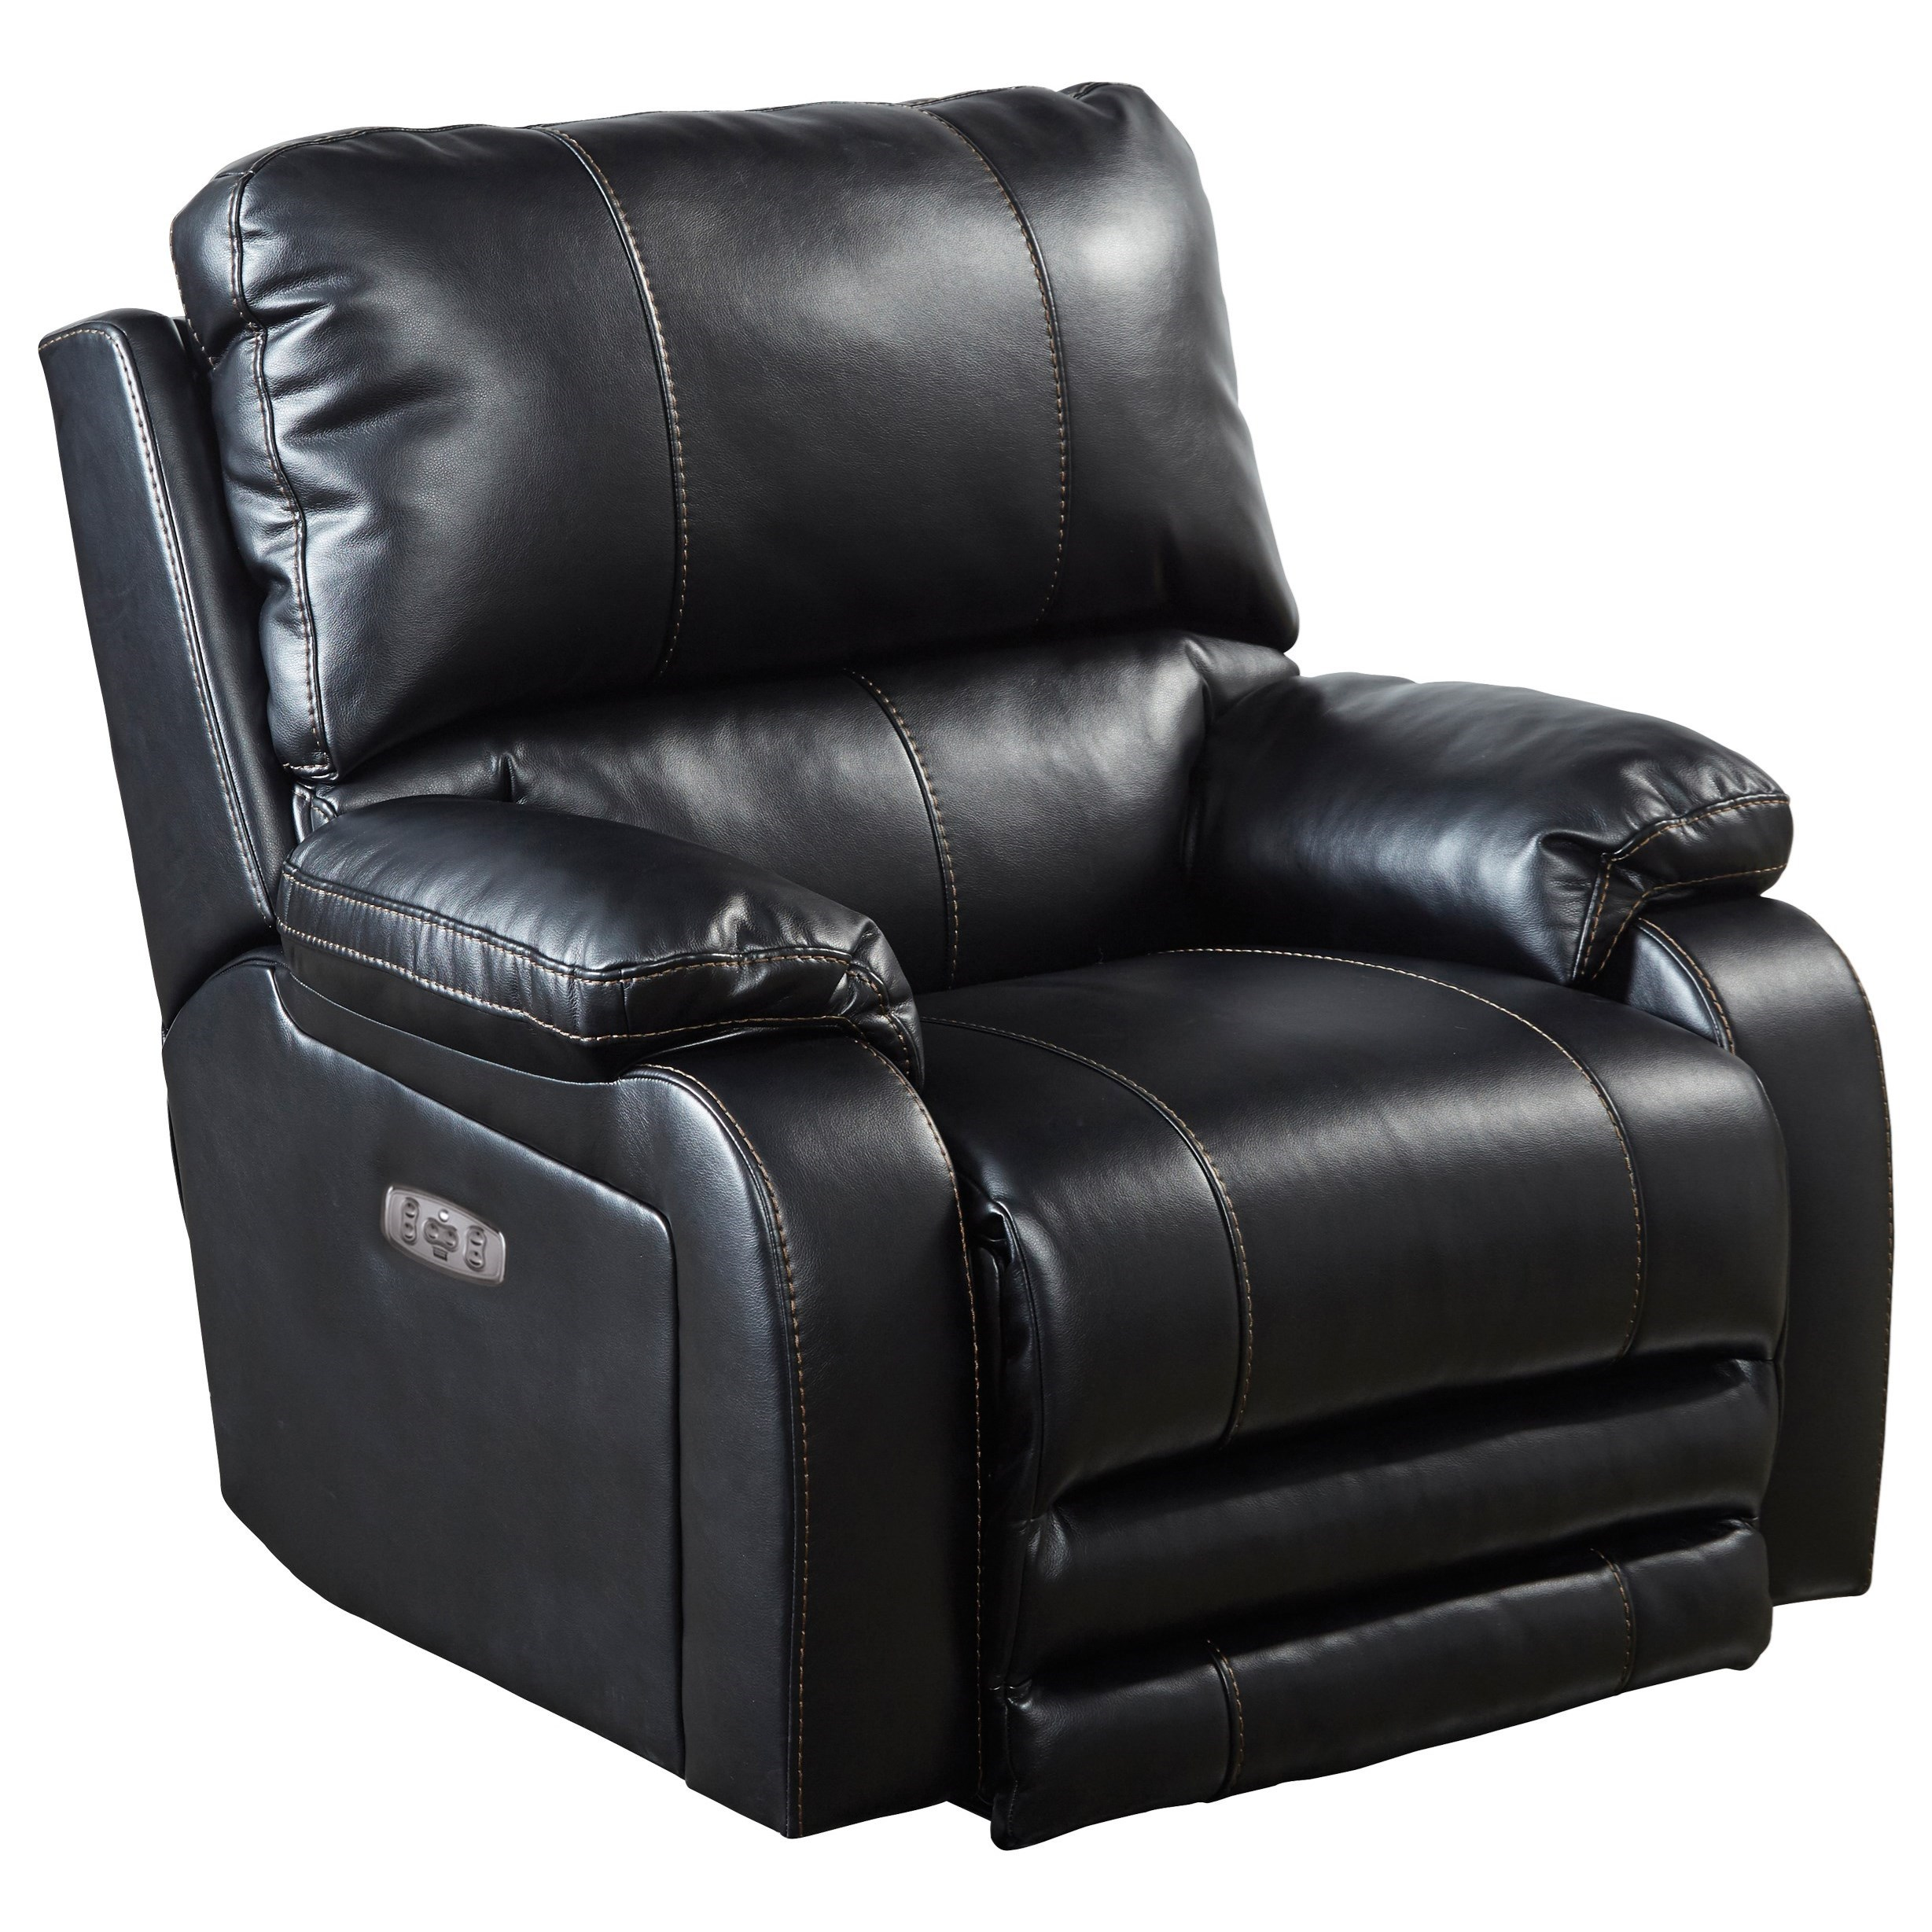 Thornton Power Lay Flat Recliner w/ Power Lumbar by Catnapper at Northeast Factory Direct